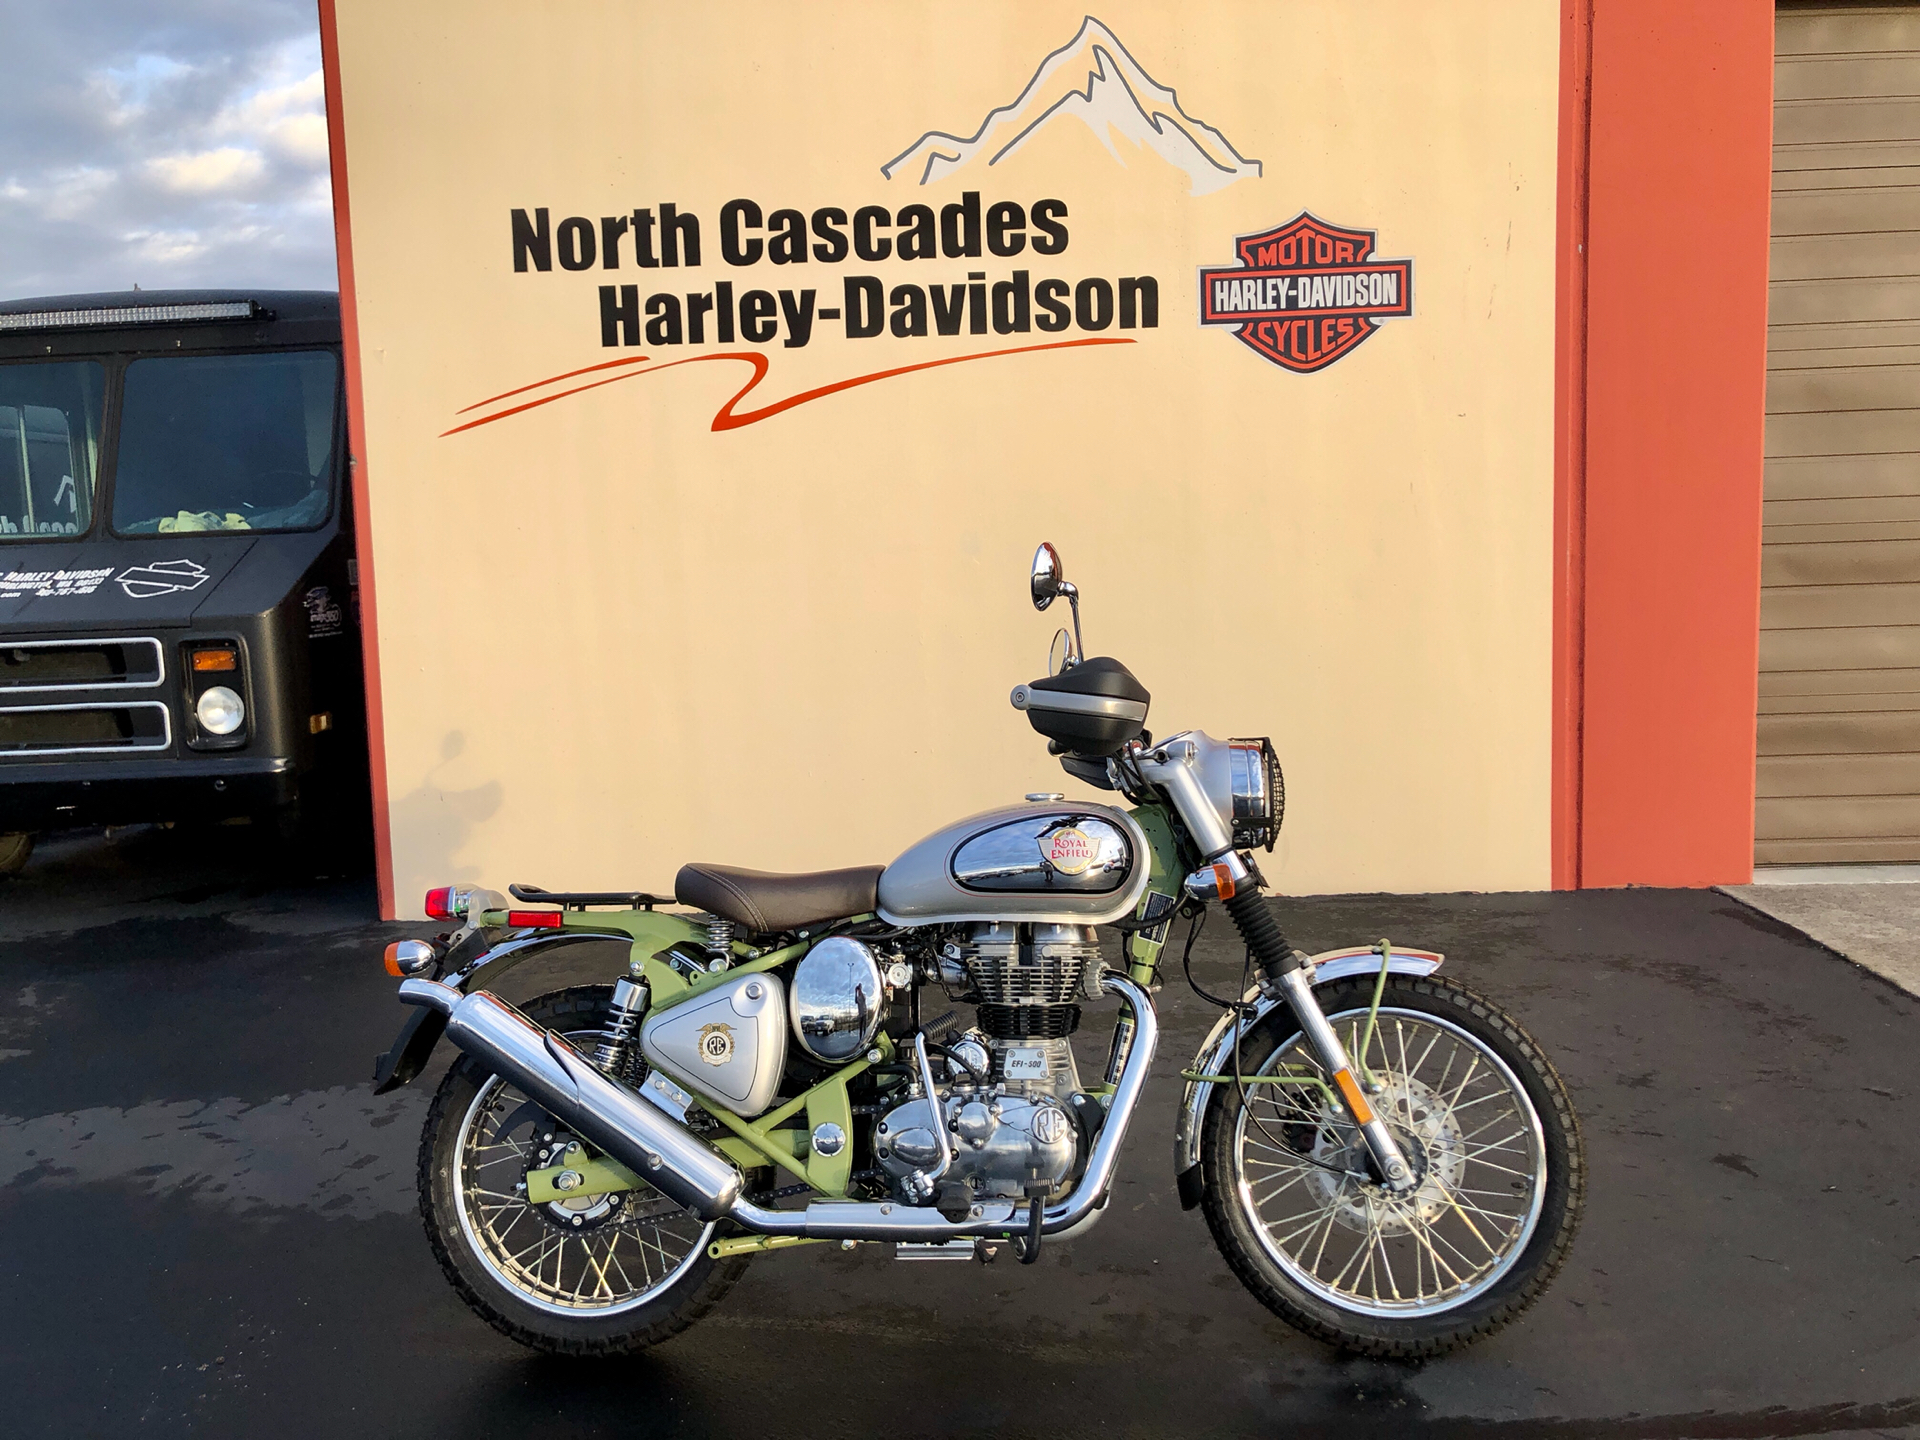 2020 Royal Enfield Bullet Trials Works Replica 500 Limited Edition in Burlington, Washington - Photo 1